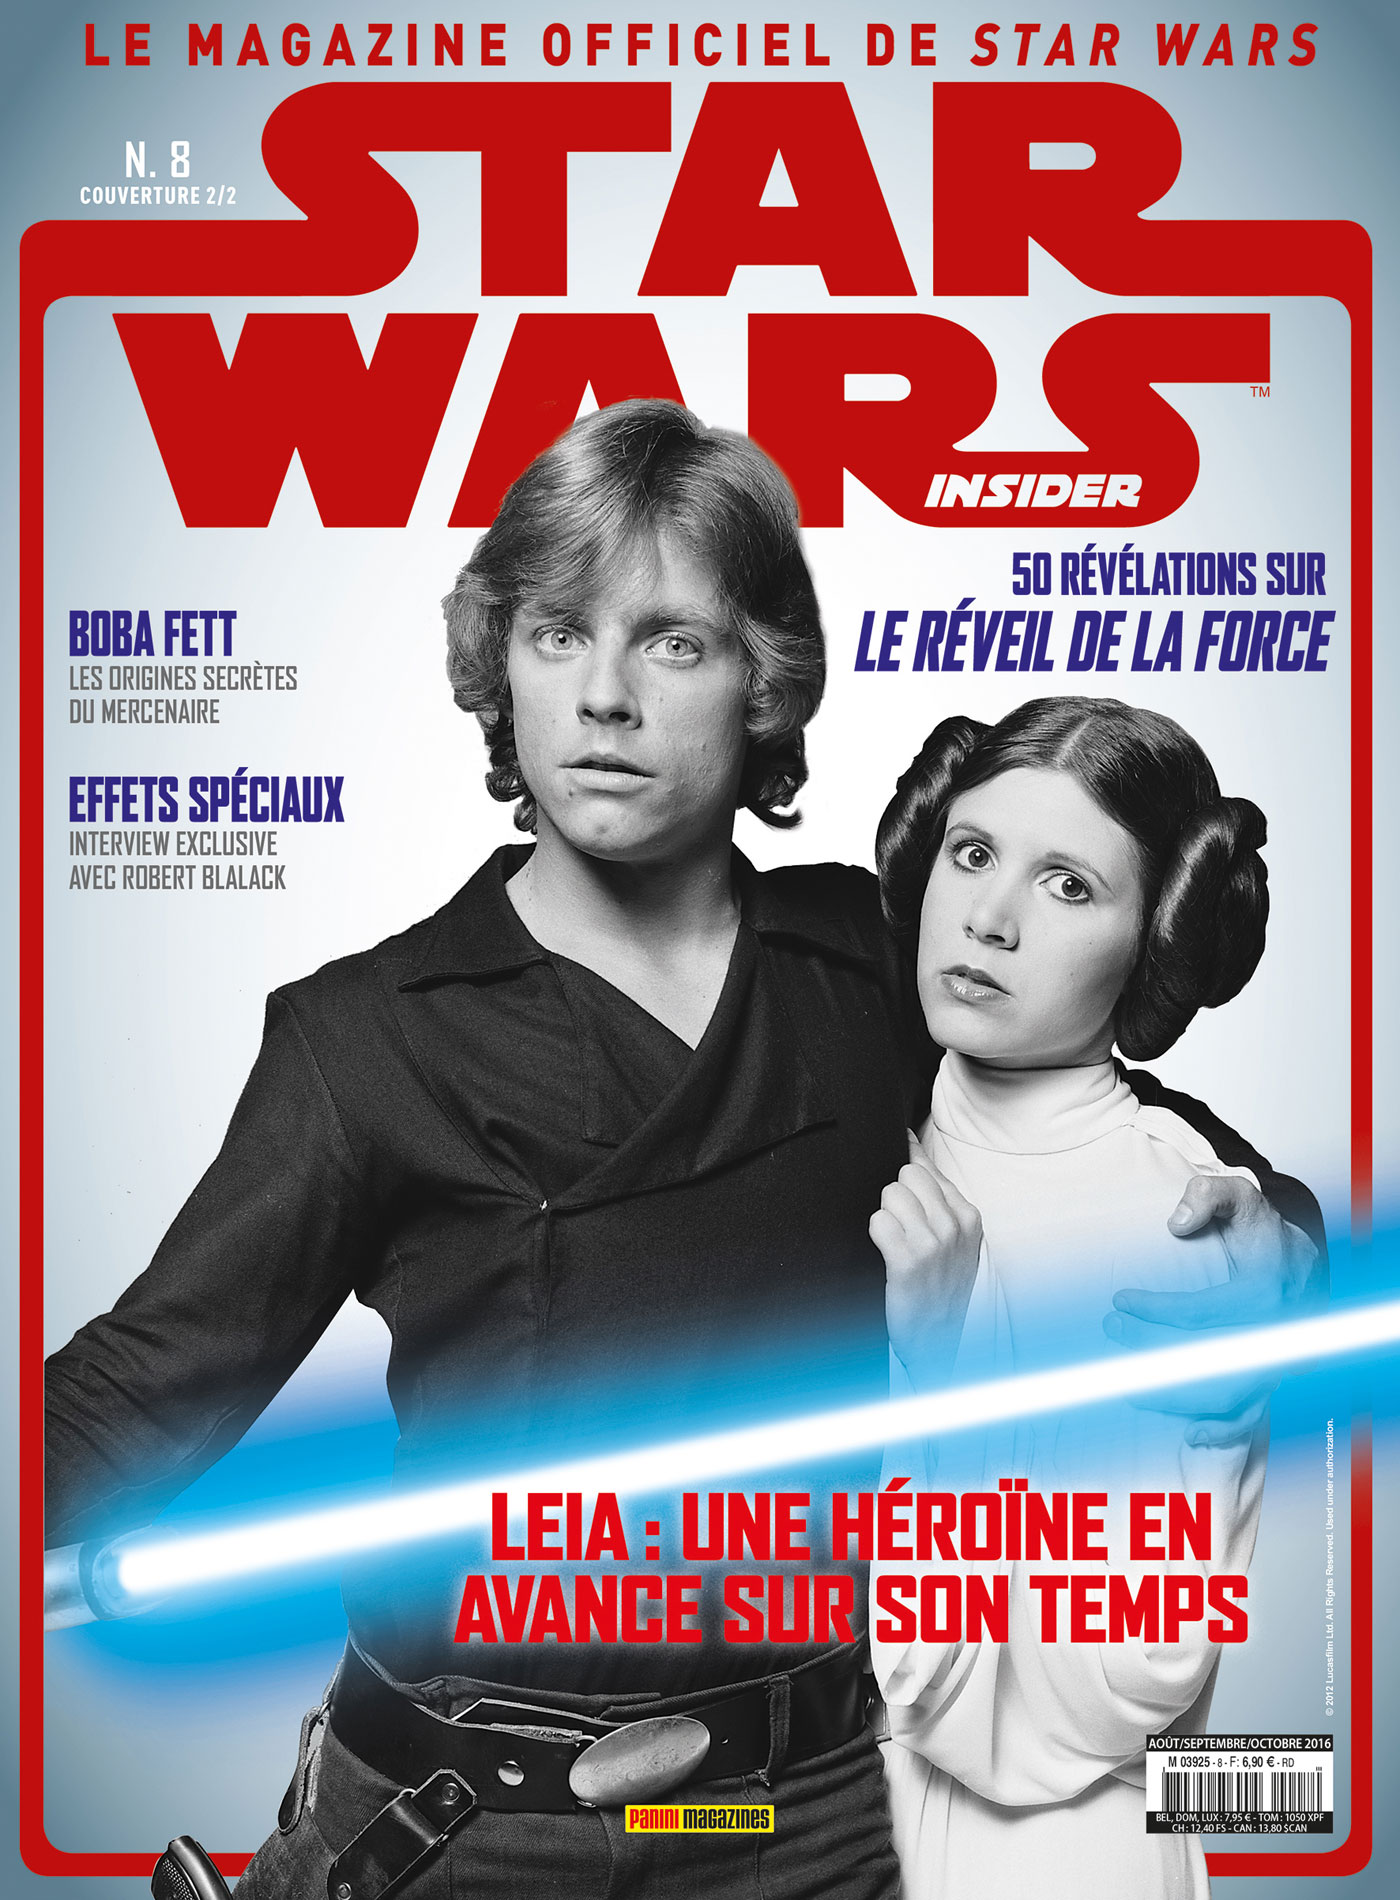 Star Wars Insider 8 - Couverture B